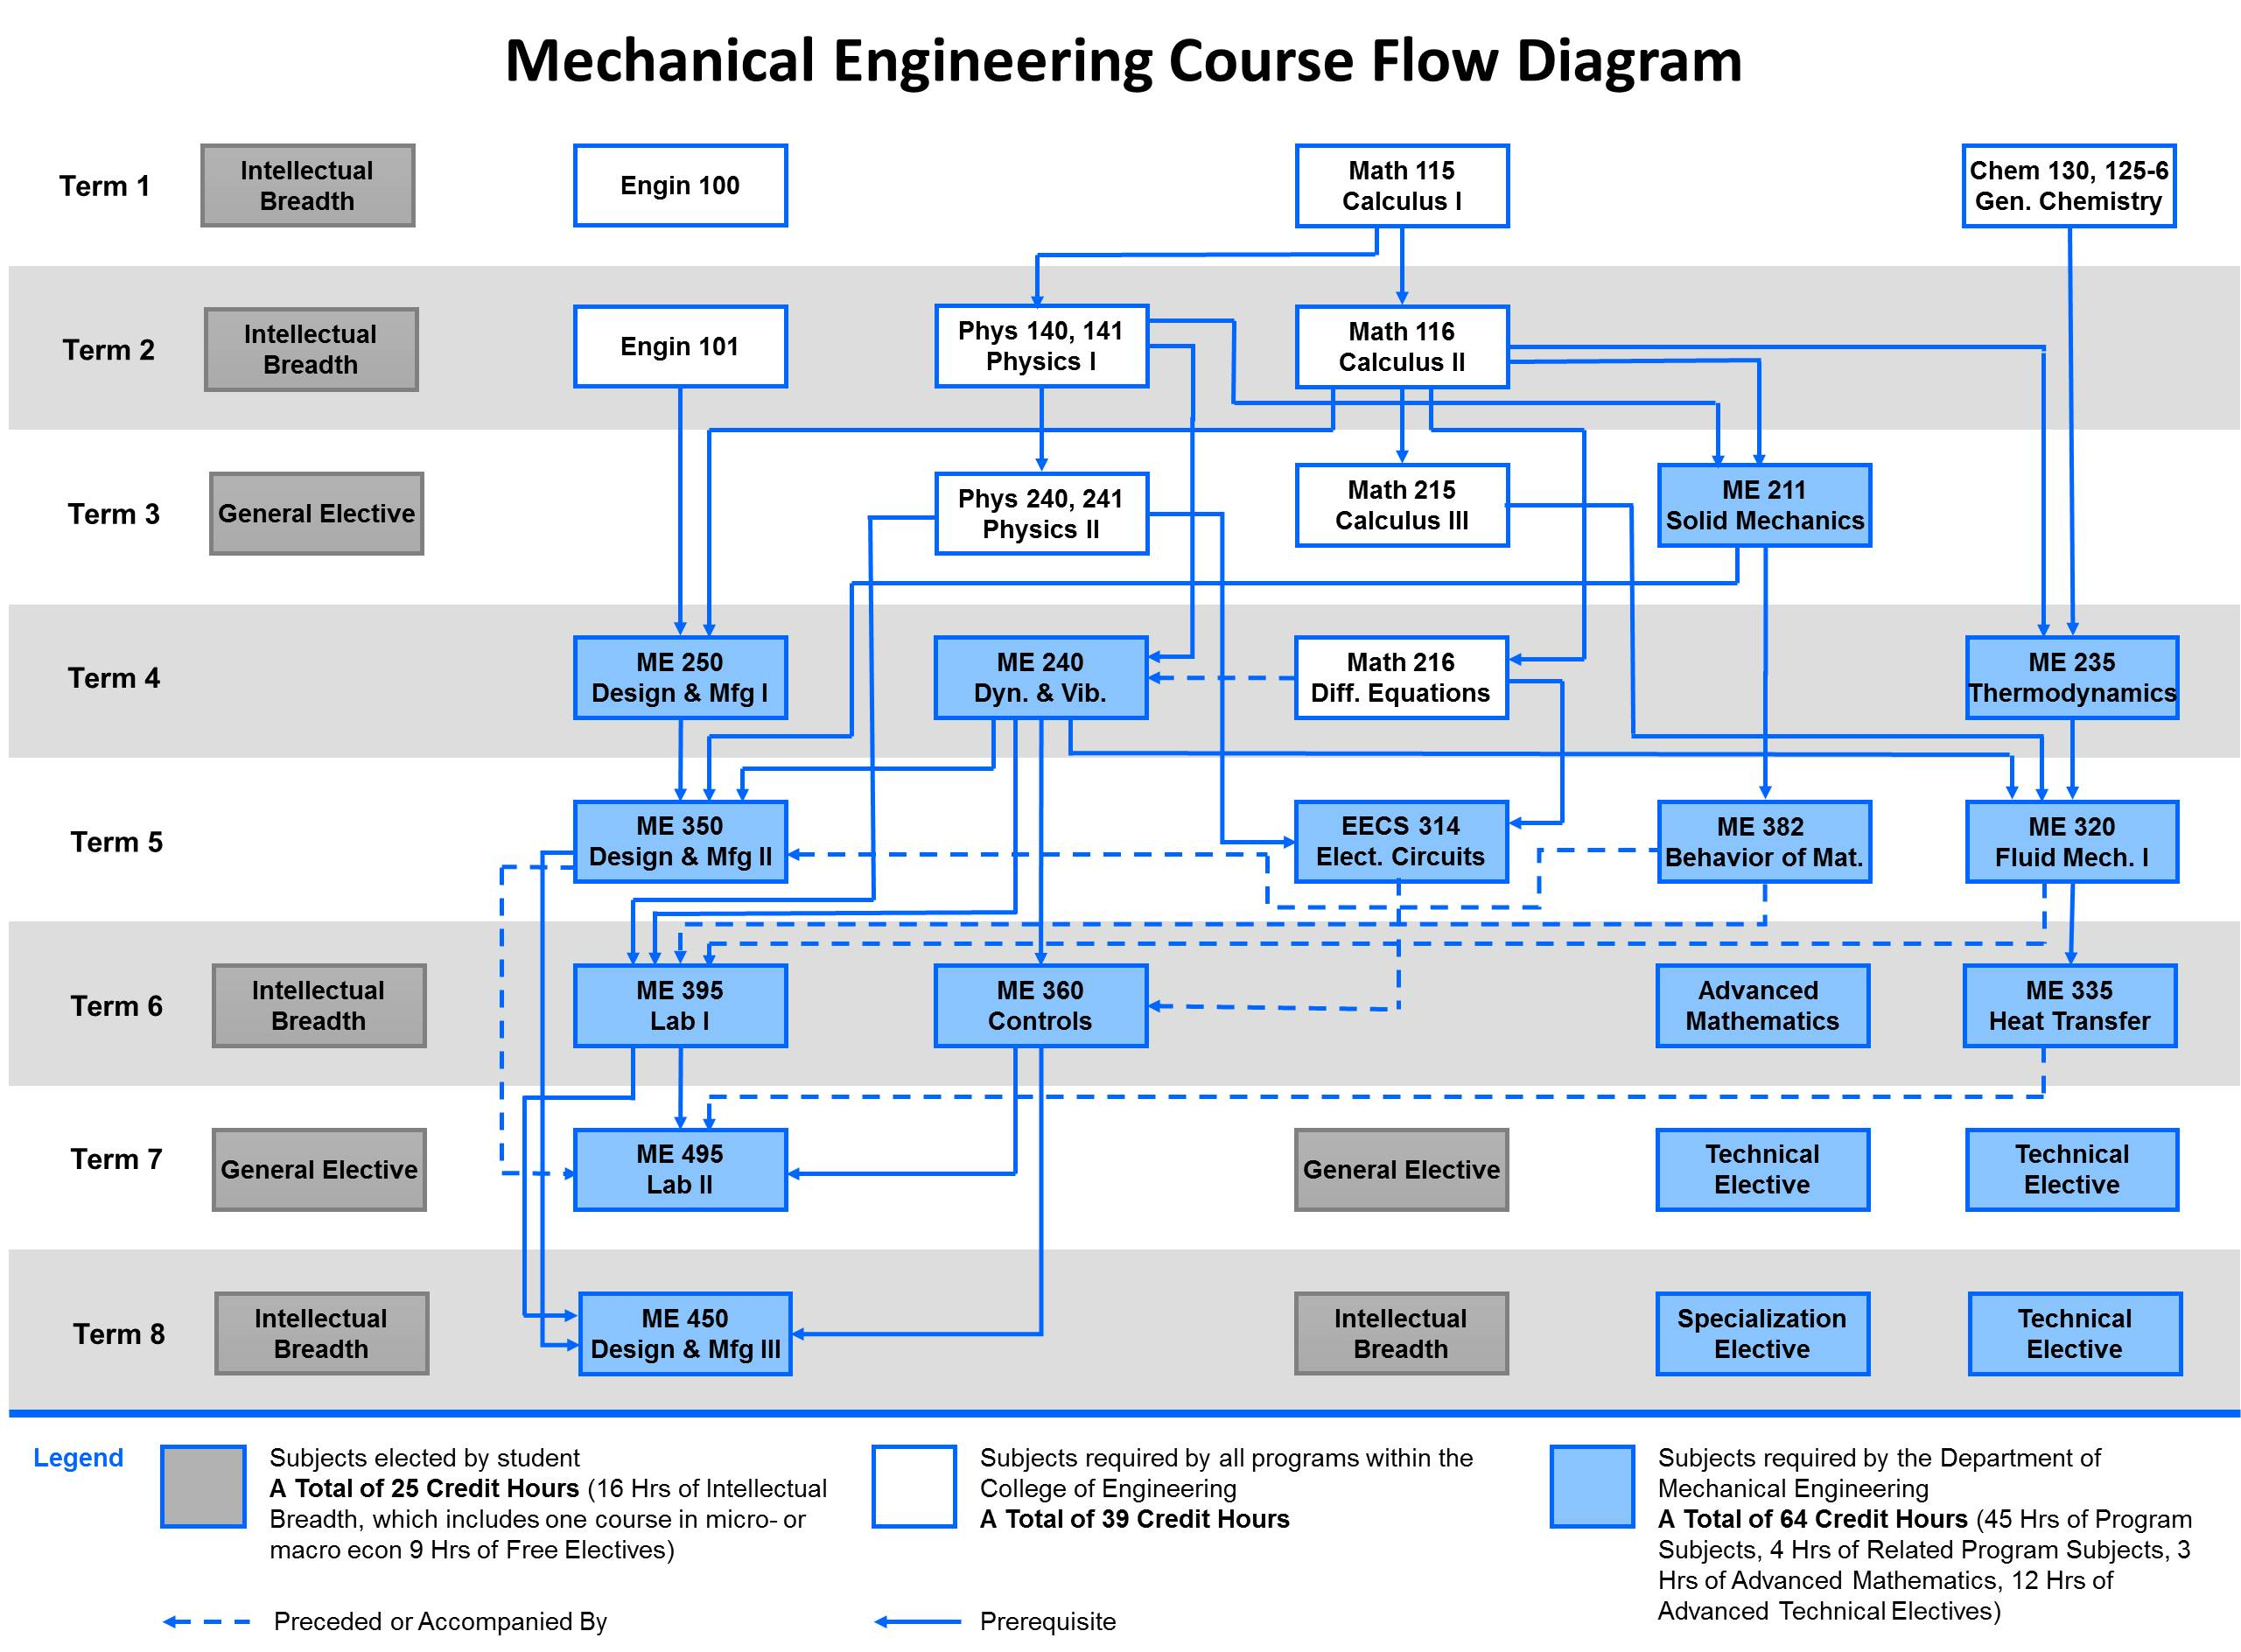 Ansi flowchart symbols create a flowchart flow chart symbol legend type of electrical wires bachelors degree um department of mechanical engineering me20degree20flow20chart20201620v1 nvjuhfo Choice Image